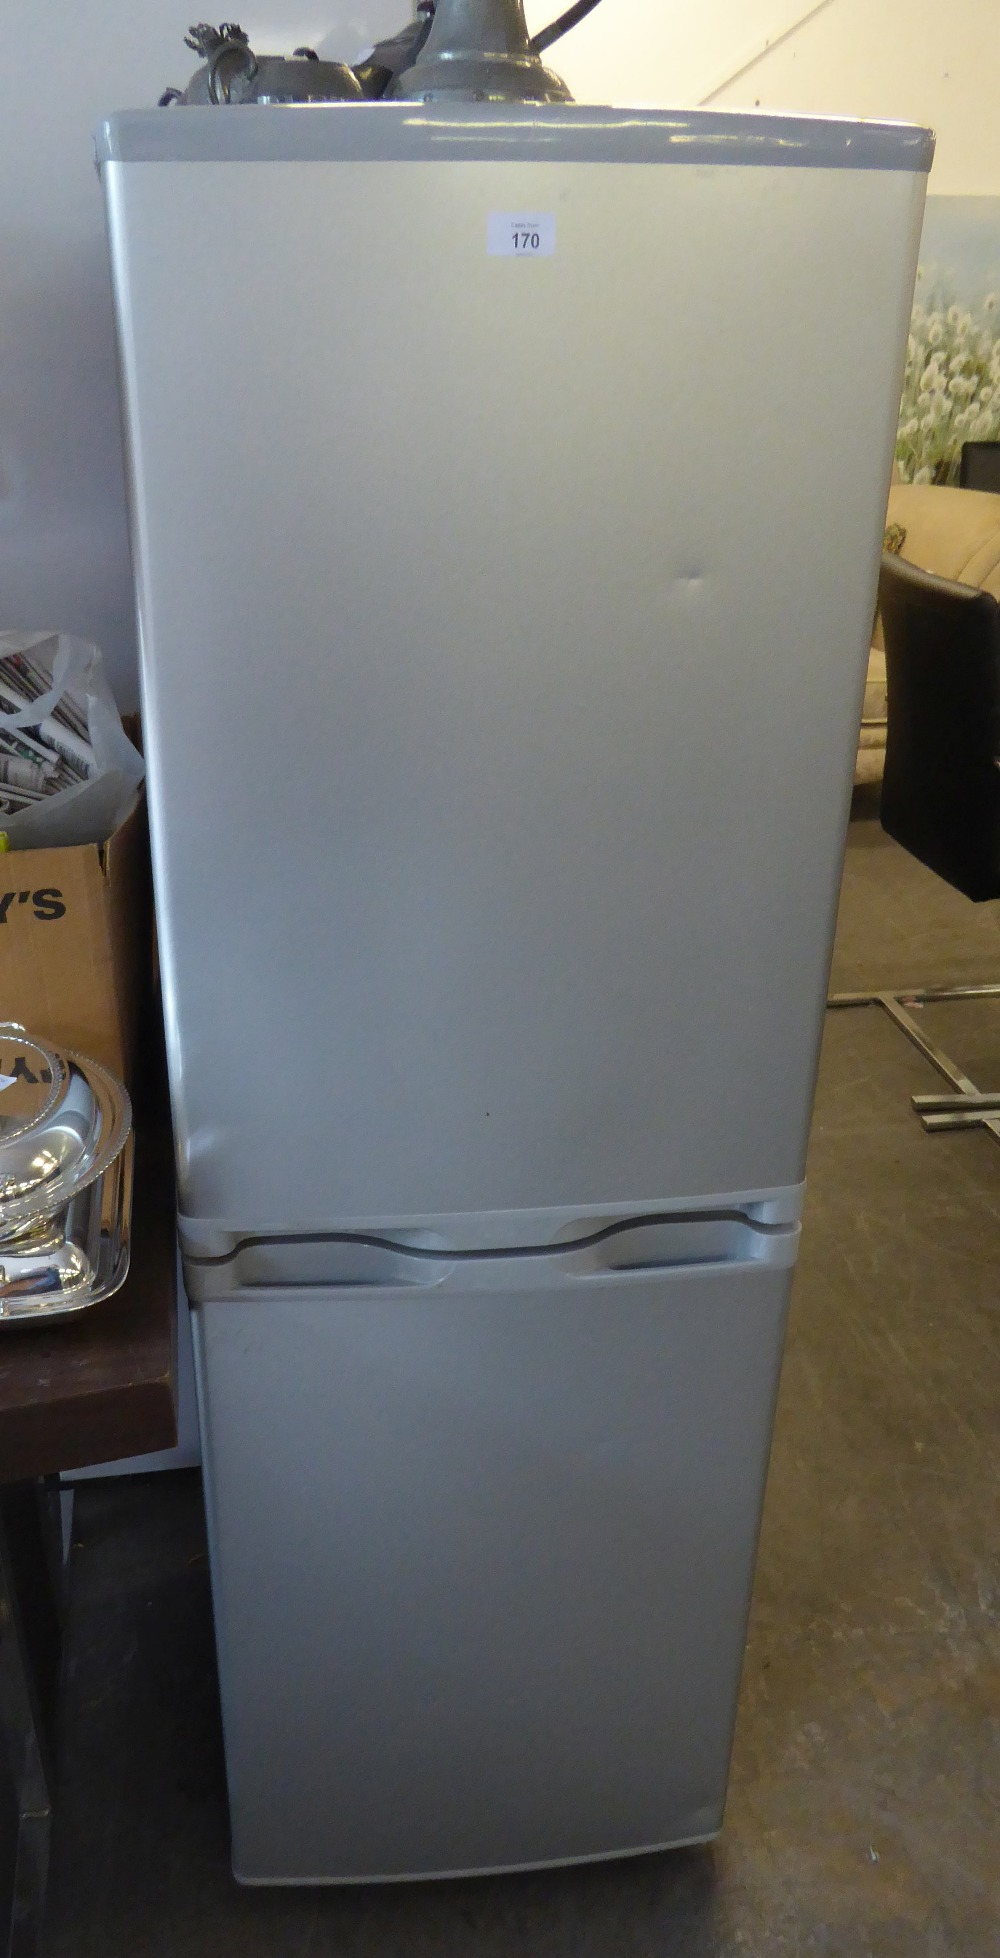 A SMALL FRIDGE FREEZER IN SILVER CASE, THE FREEZER HAVING 3 DRAWERS (SOME DRAWERS CRACKED)